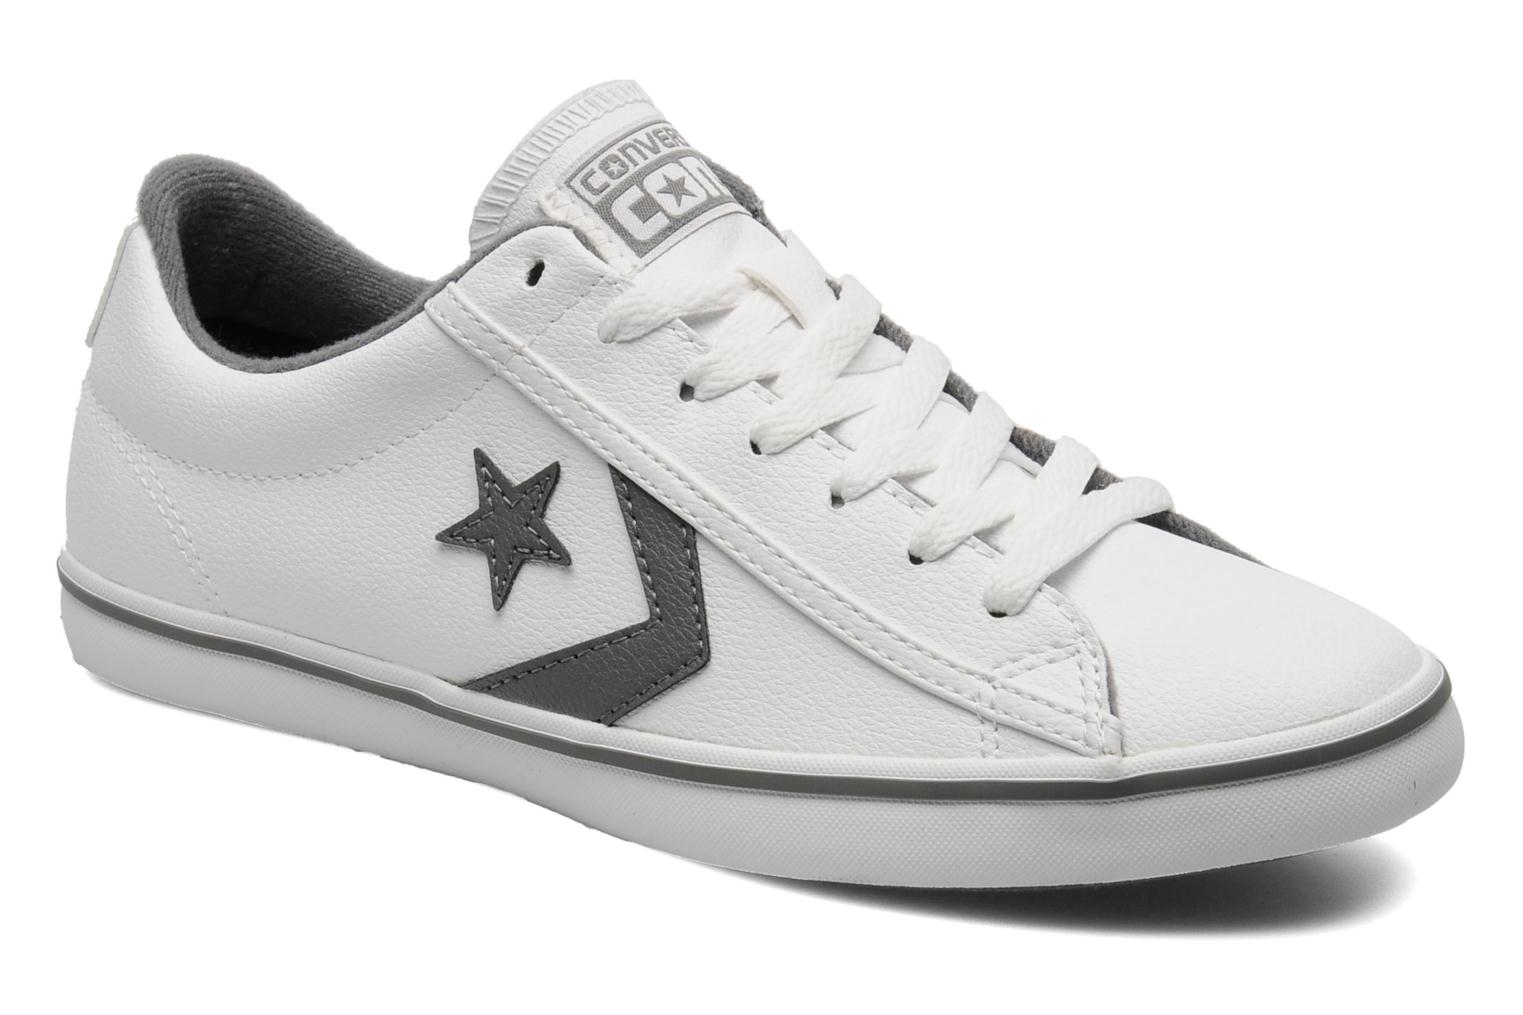 b4c4d81655ea ... sweden trainers converse star player lo pro cuir ox m white detailed  view pair view 04862